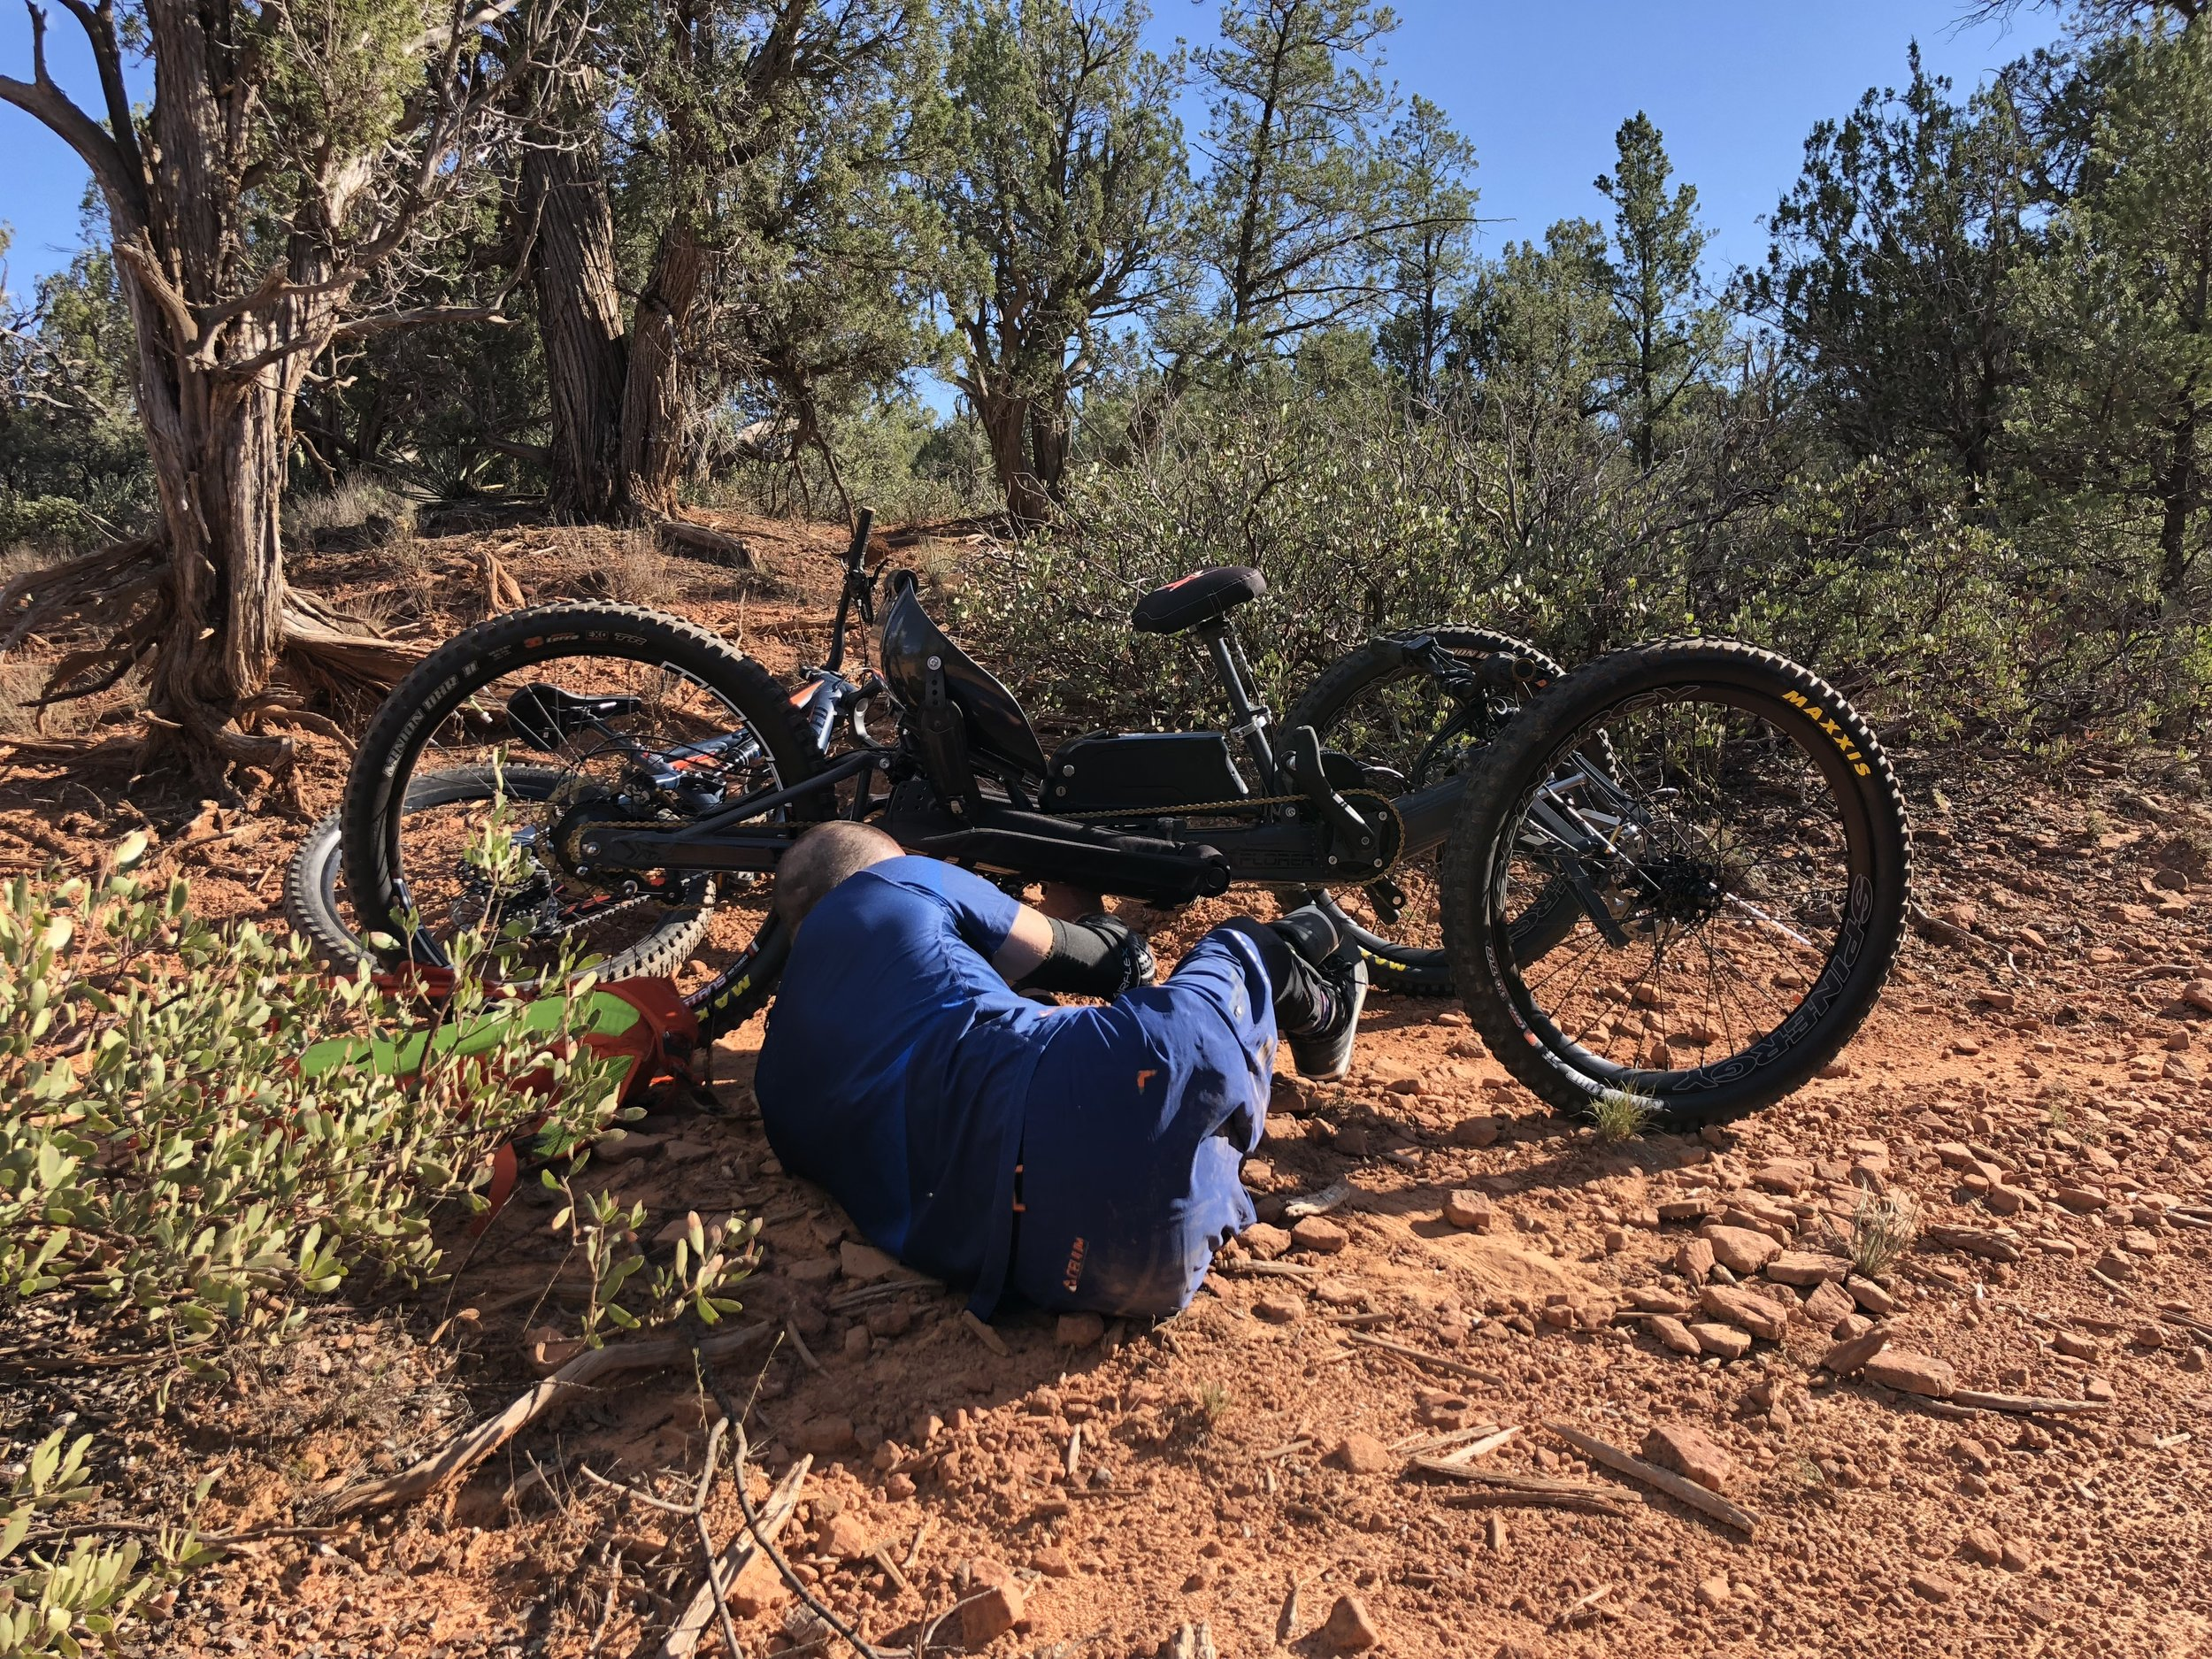 Working on my bike about 2mins into the ride in Sedona. Ride #1.